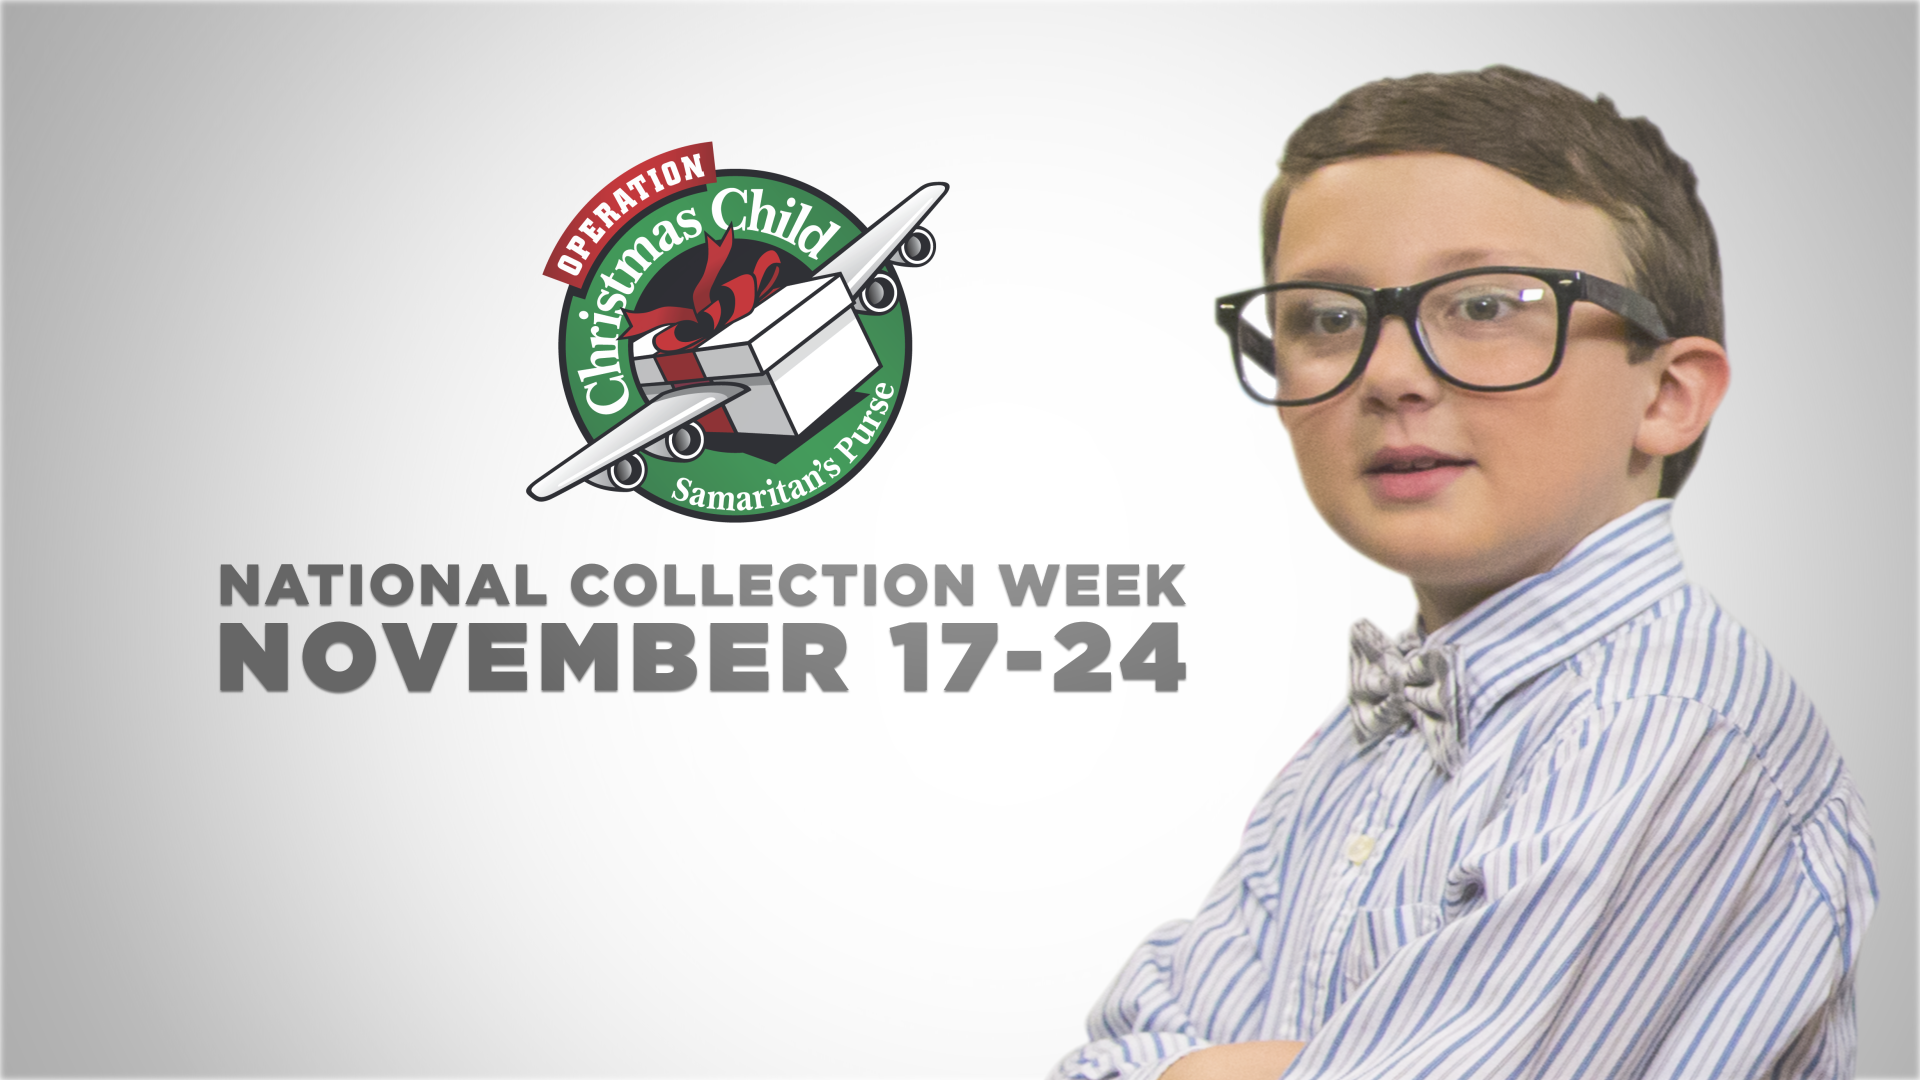 Operation Christmas Child National Shoebox Collection is November 17-24. If the new kid can learn to pack a box, so can you!